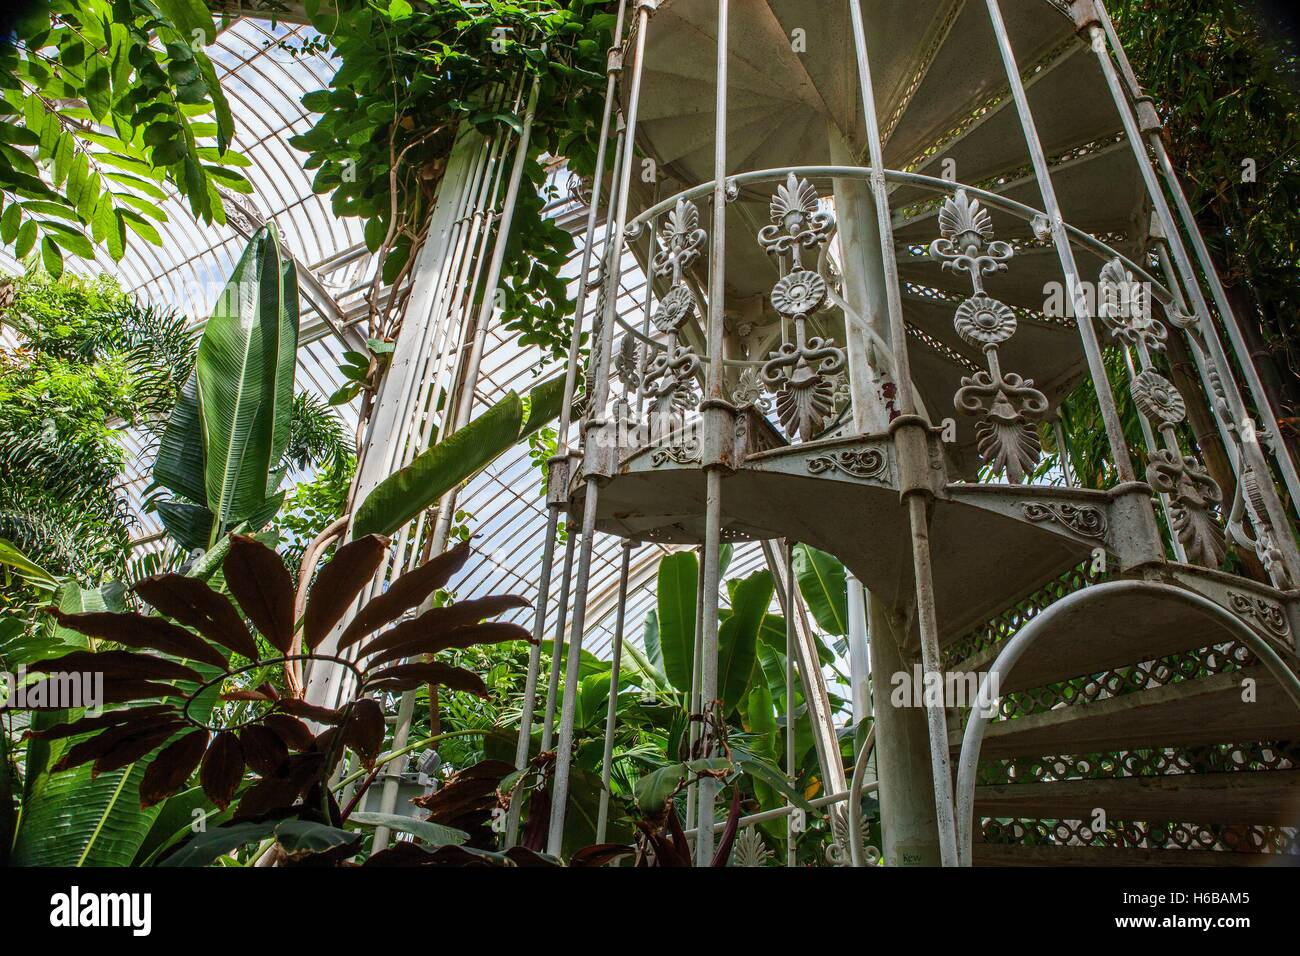 kew gardens. palm house, large greenhouse, interior view, tropical